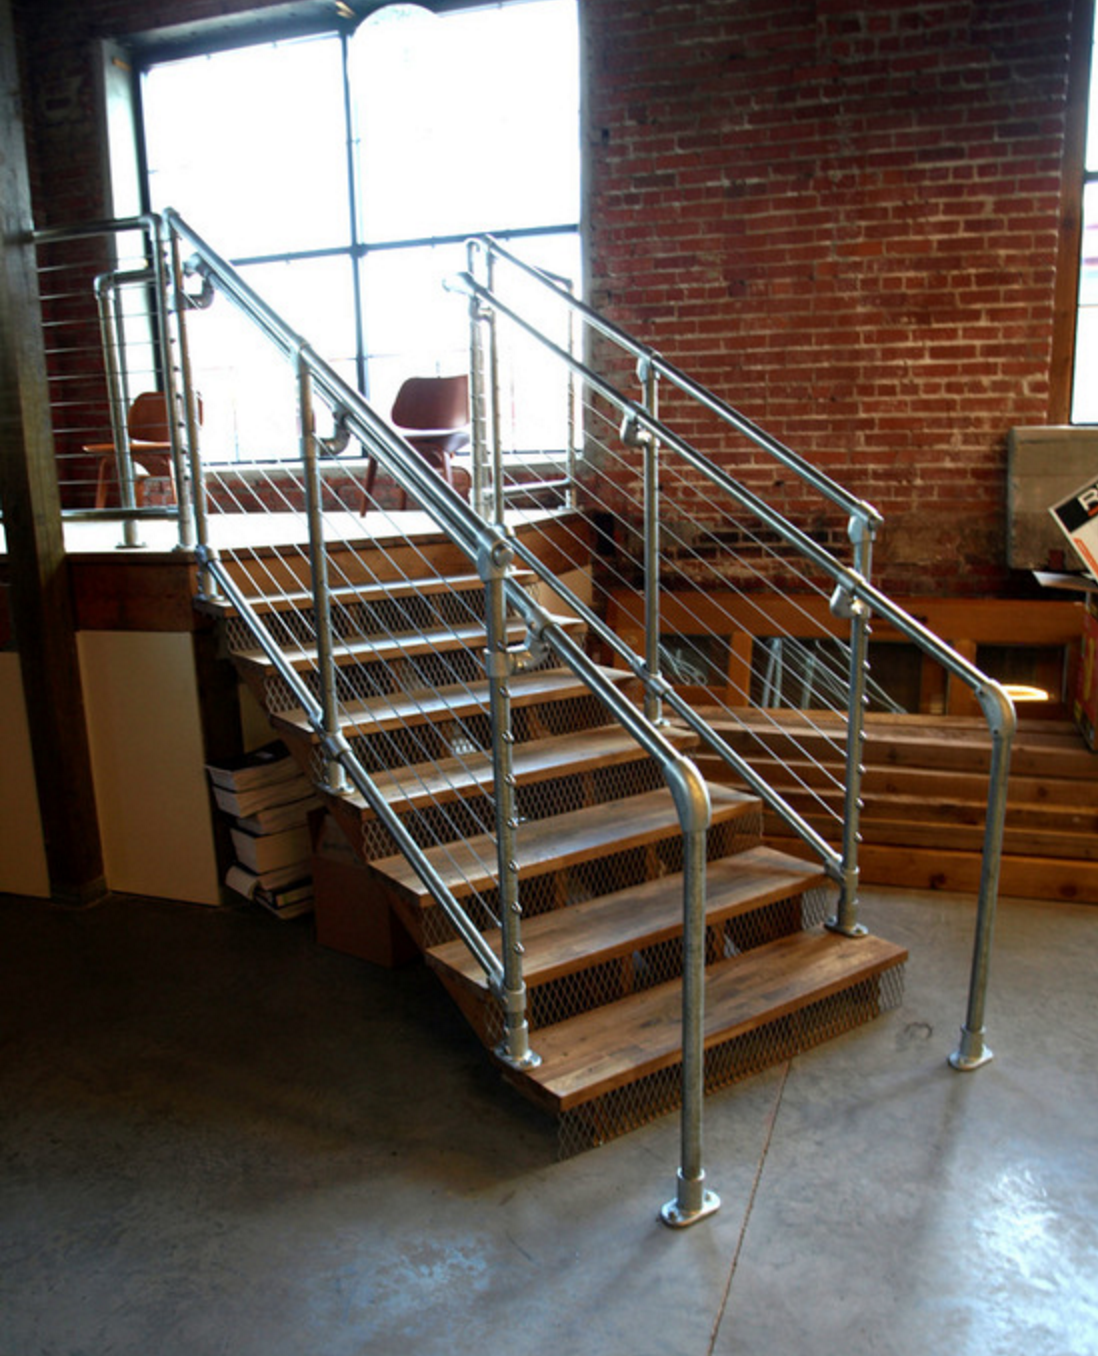 Pin On Office Style | Industrial Pipe Stair Railing | Threaded Pipe | Rail | Banister | Galvanized Pipe | Wall